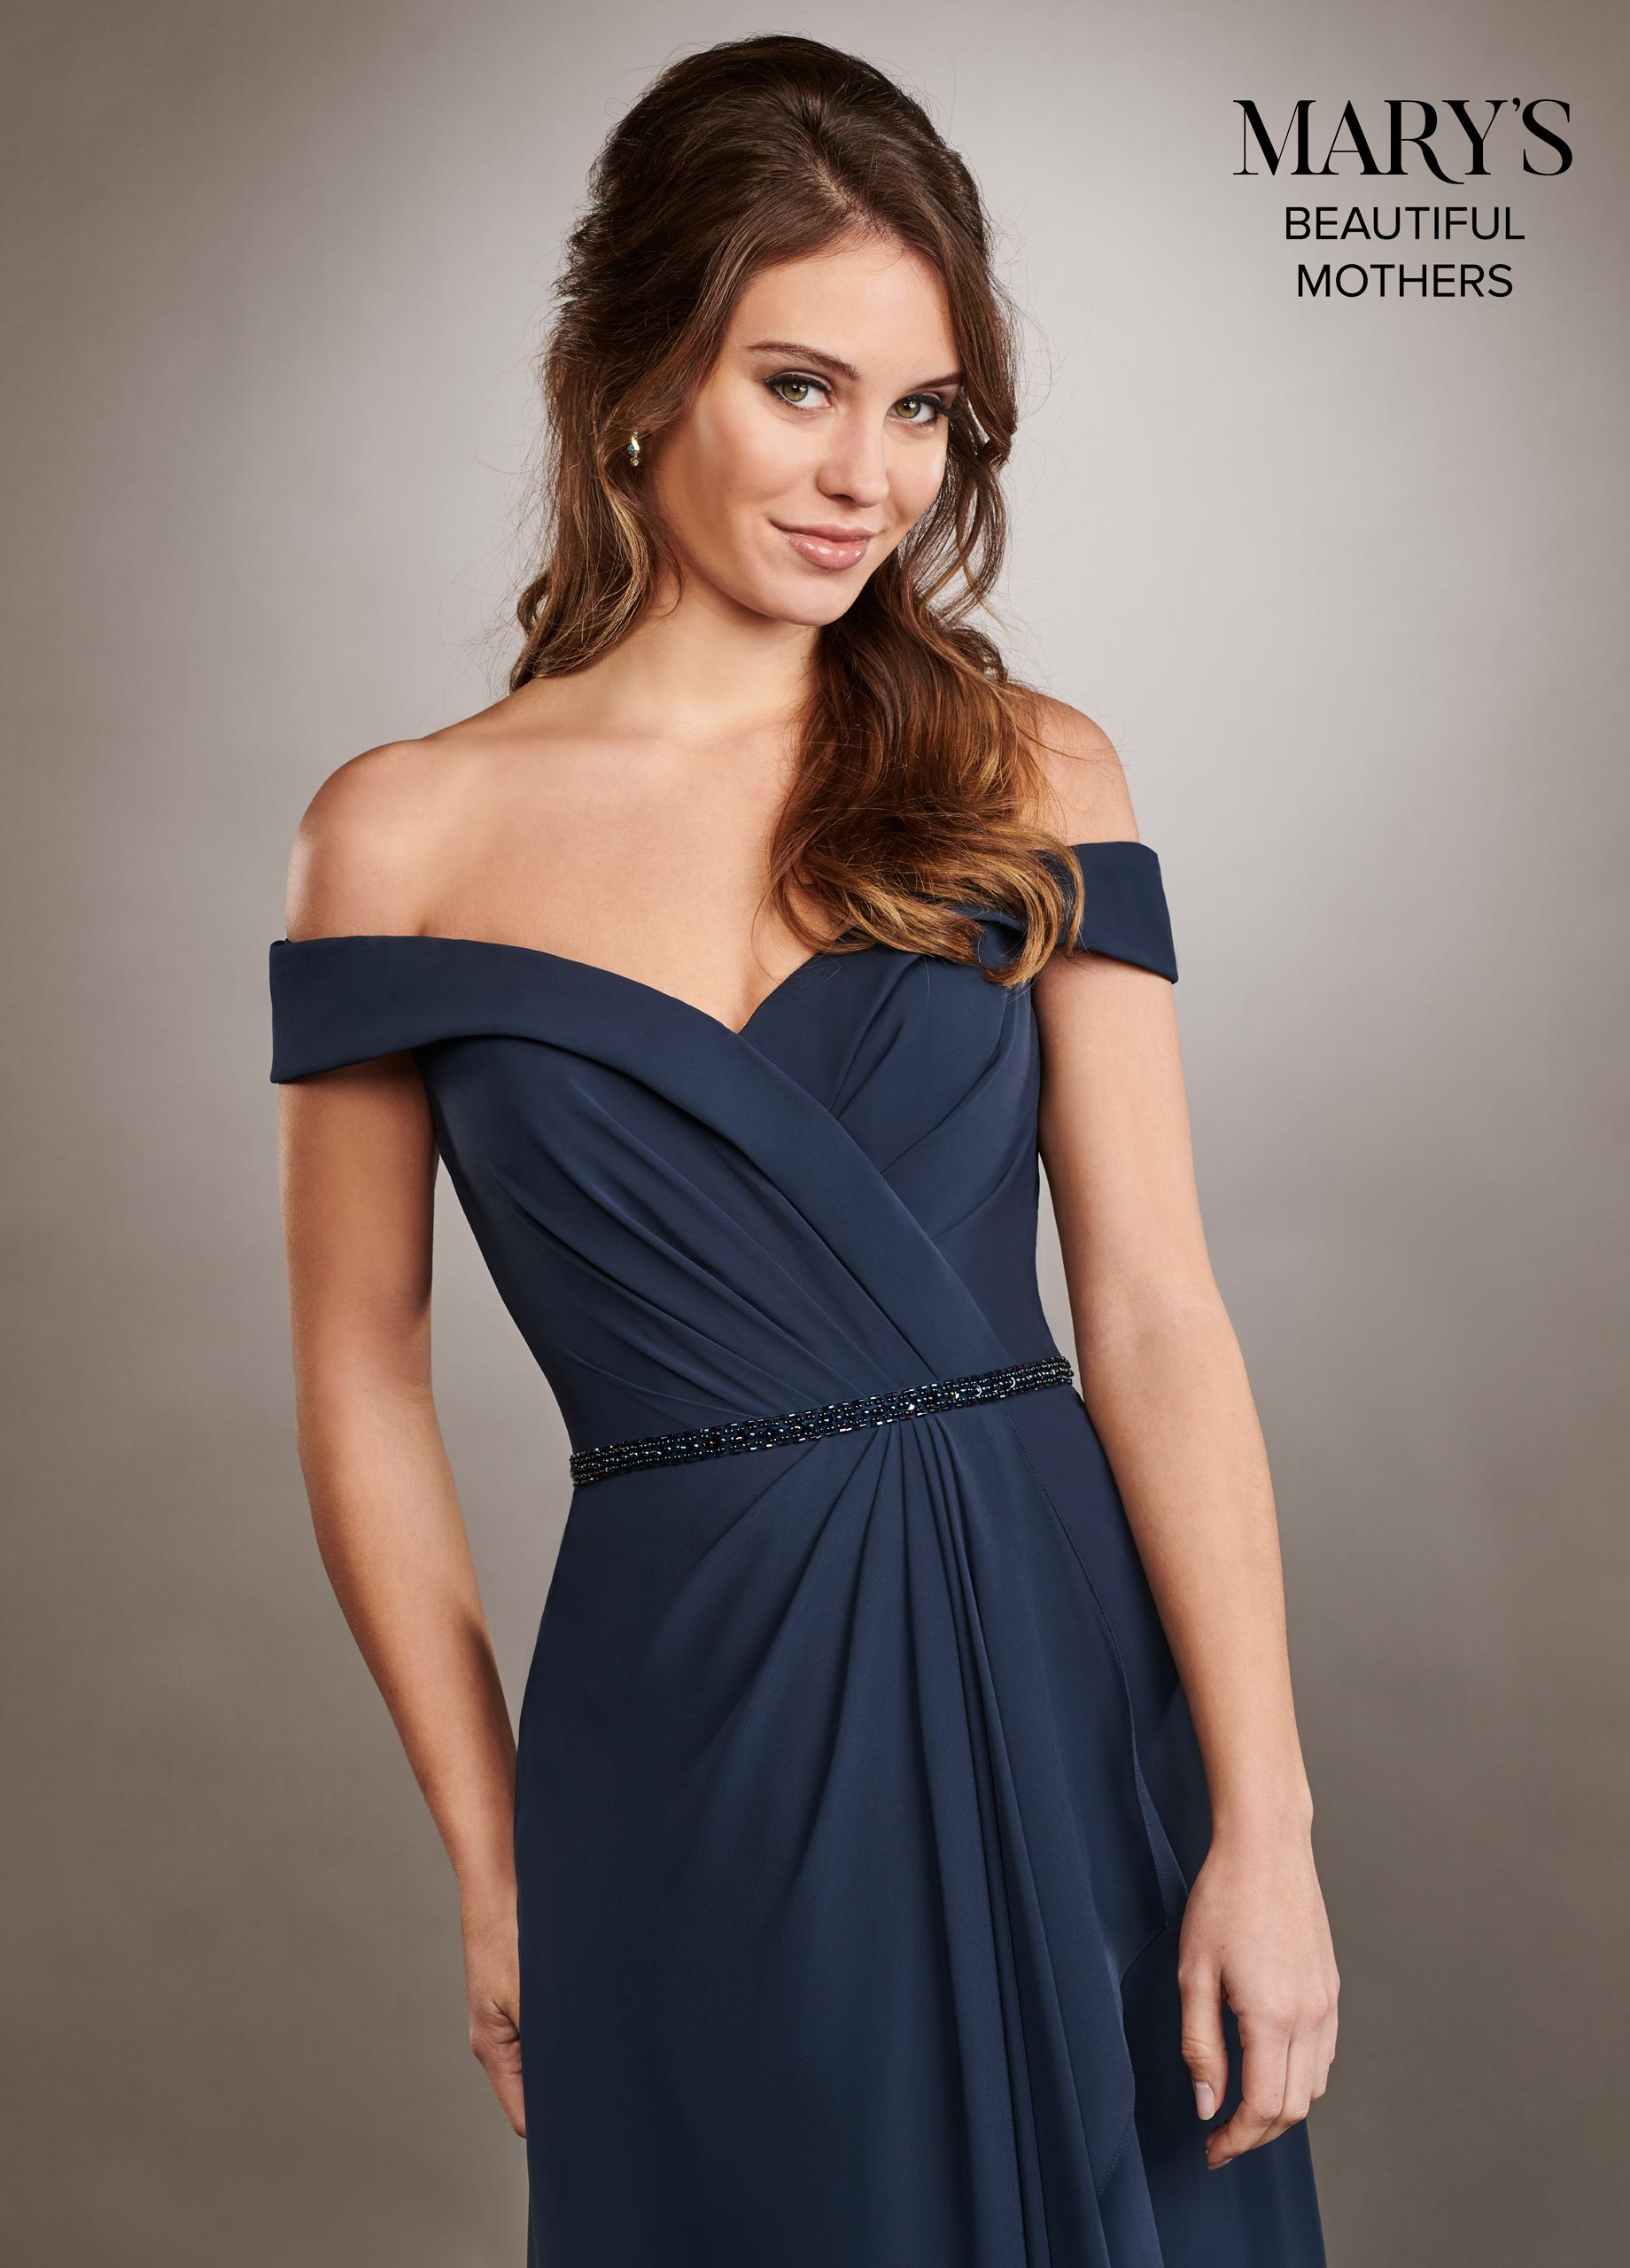 Mother Of The Bride Dresses   Beautiful Mothers   Style - MB8061